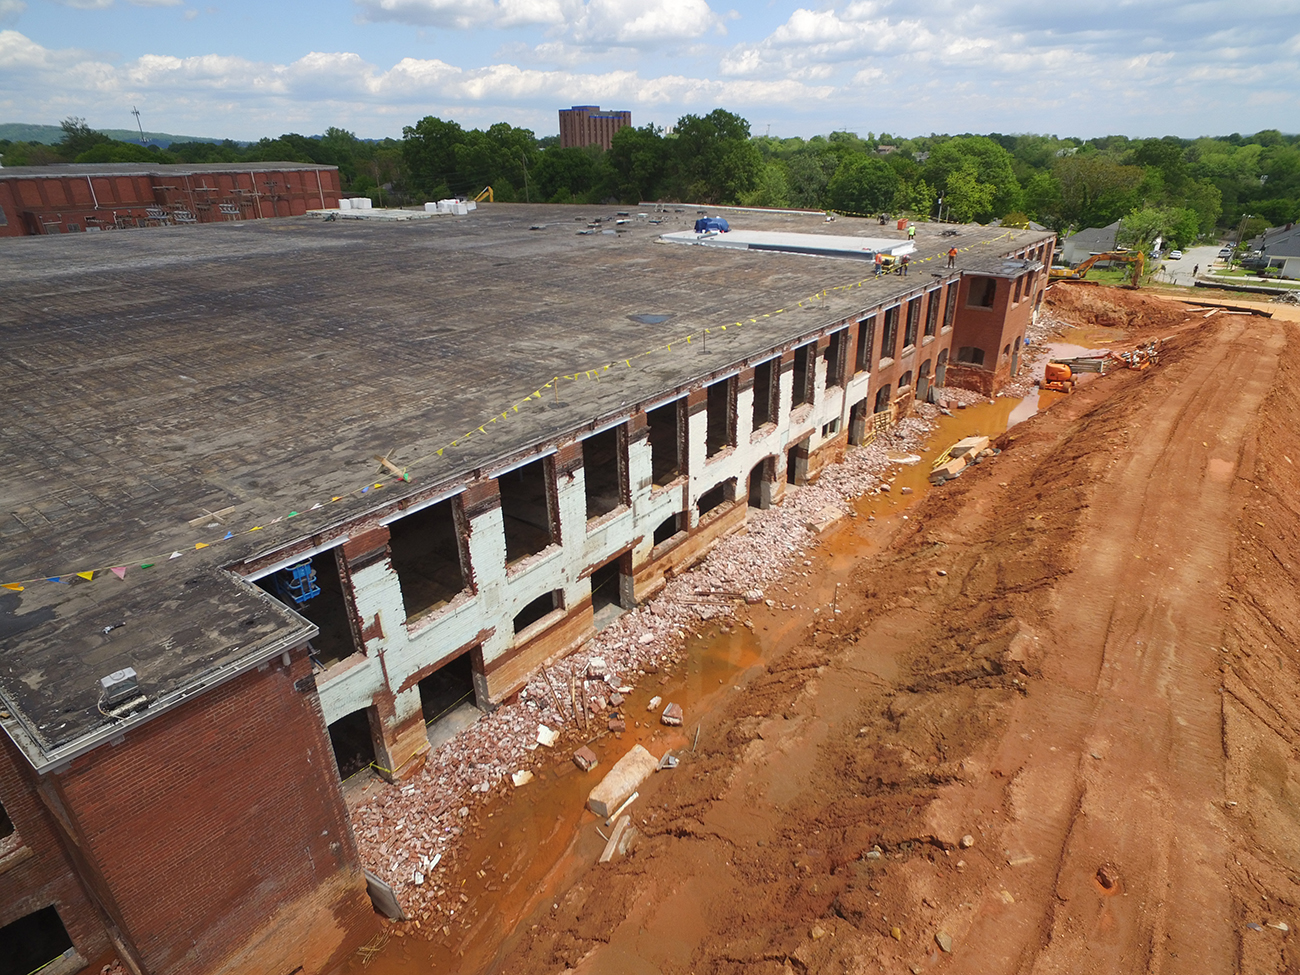 Construction Remains Steady at Historic Judson Mill